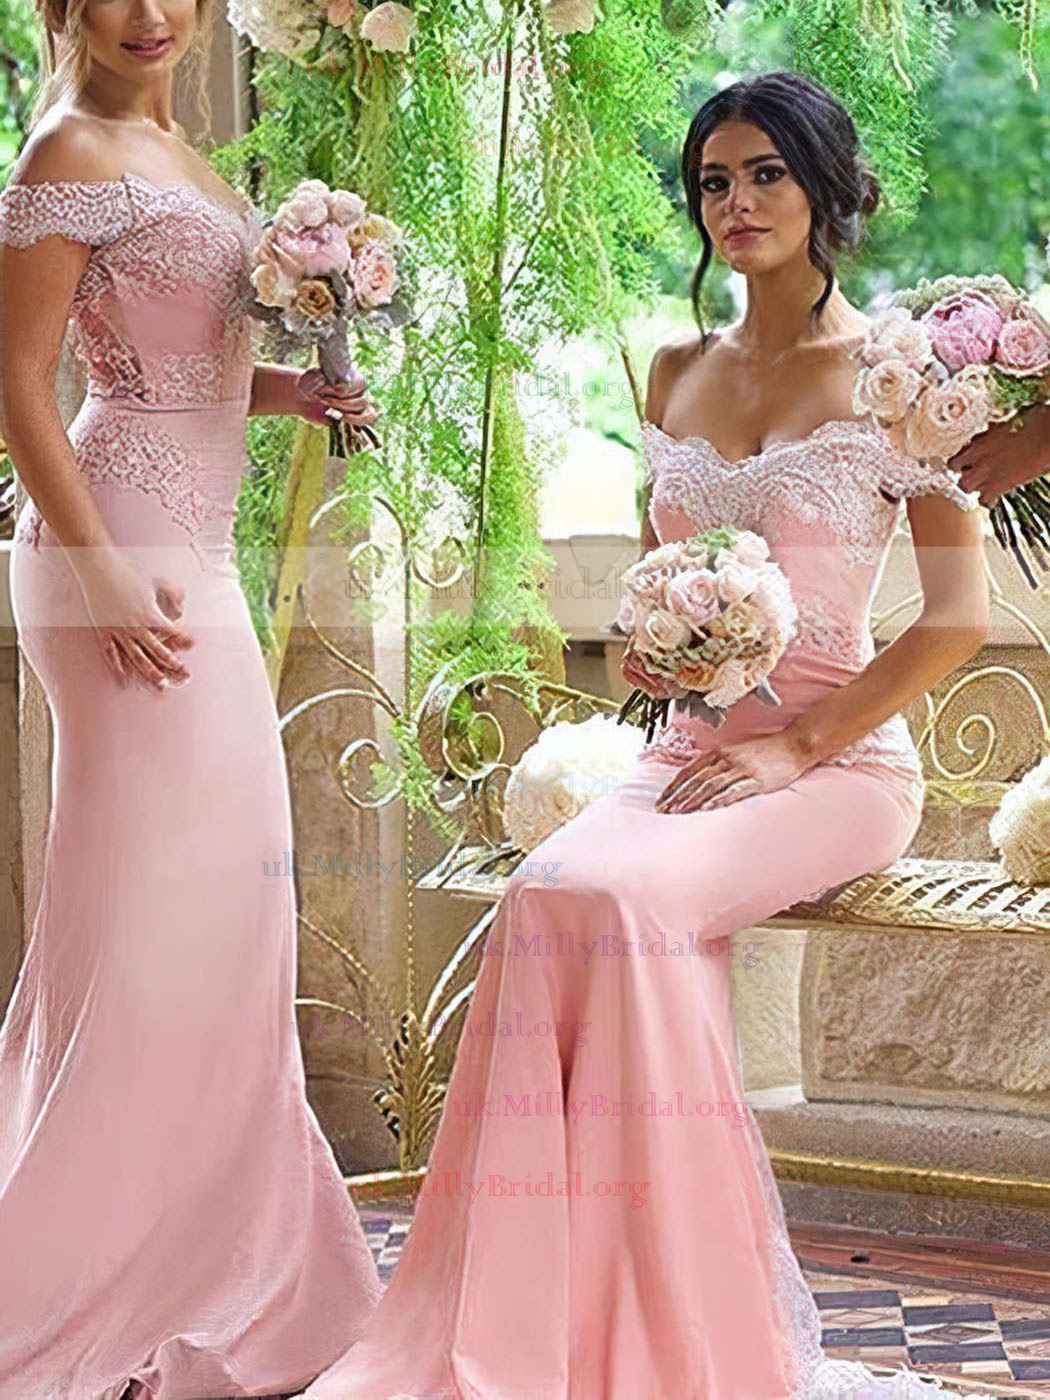 Bridesmaid Dresses MillyBridal